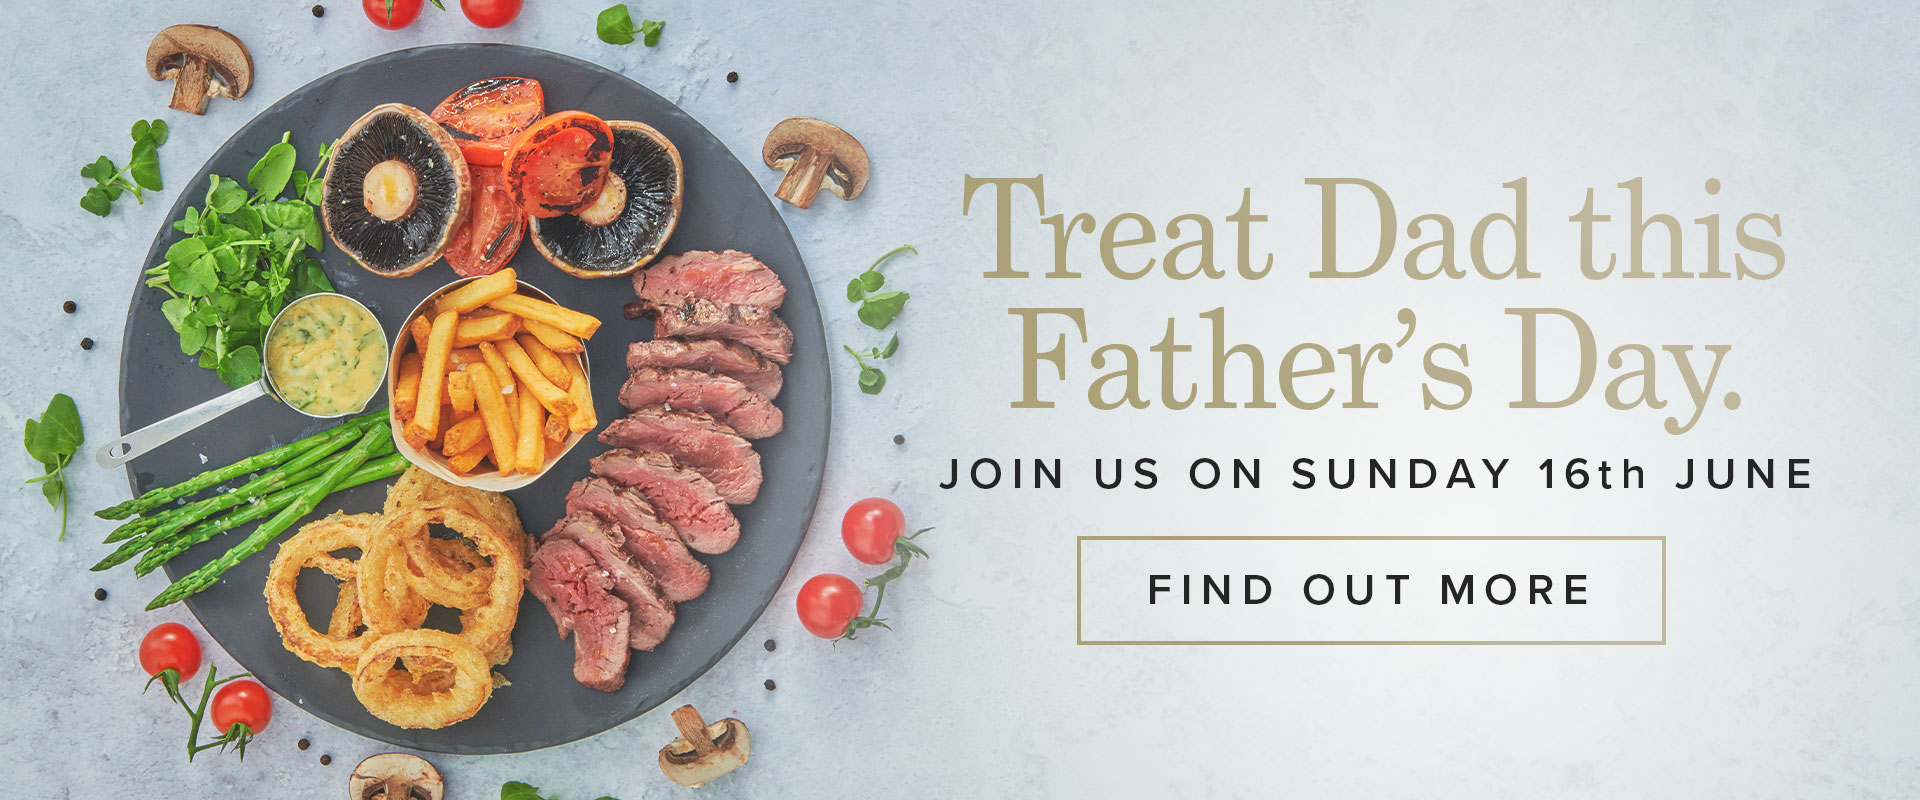 Father's Day at Browns Bluewater